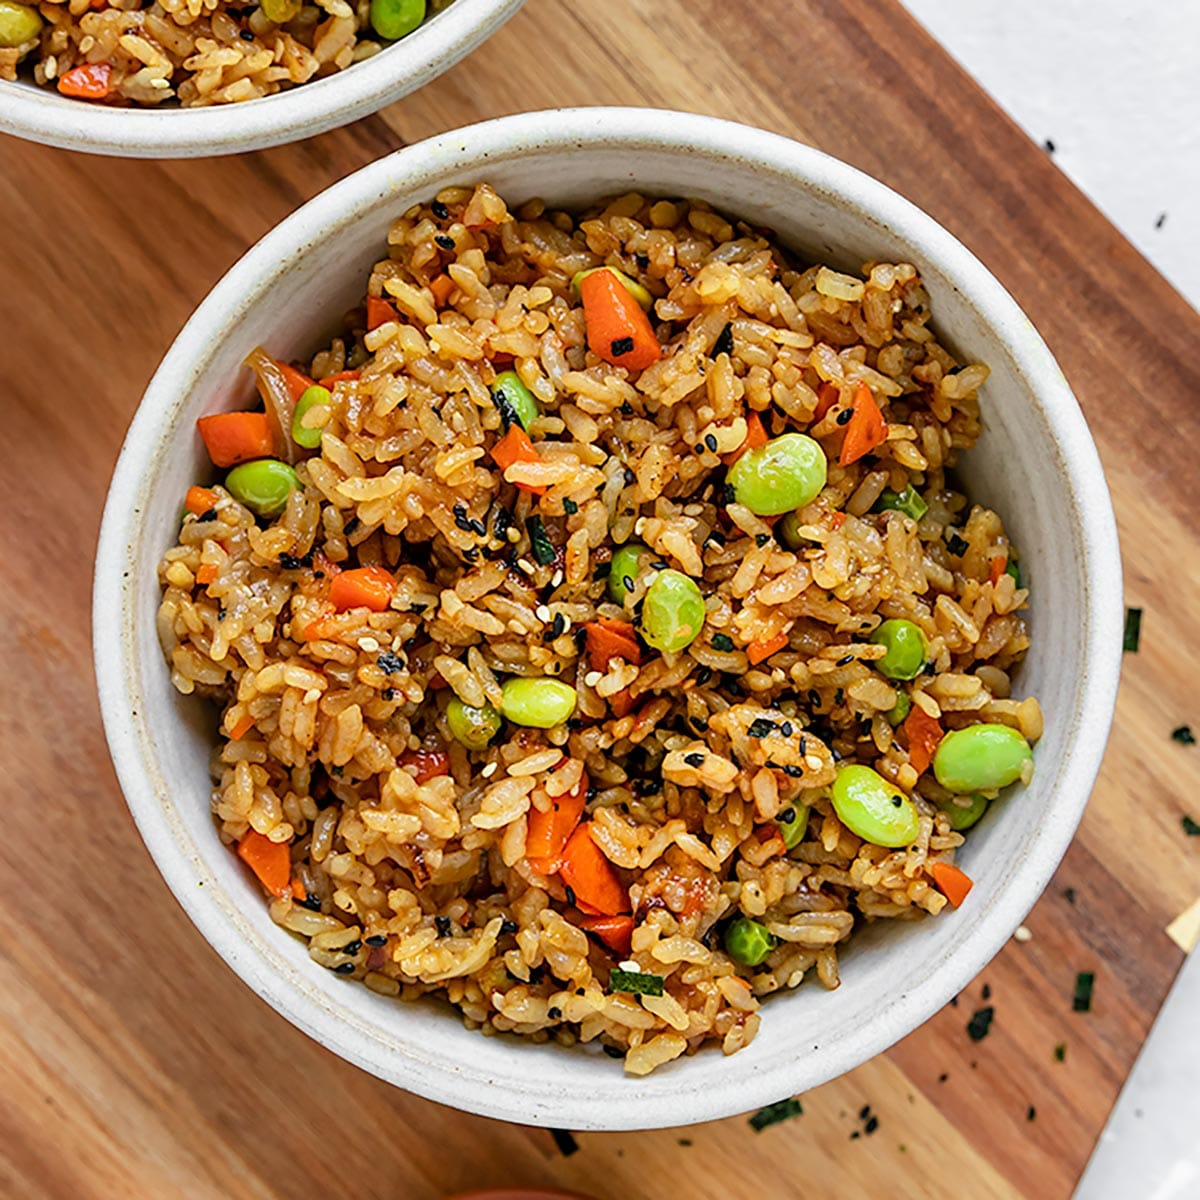 The Best Vegan Fried Rice | ShortGirlTallOrder